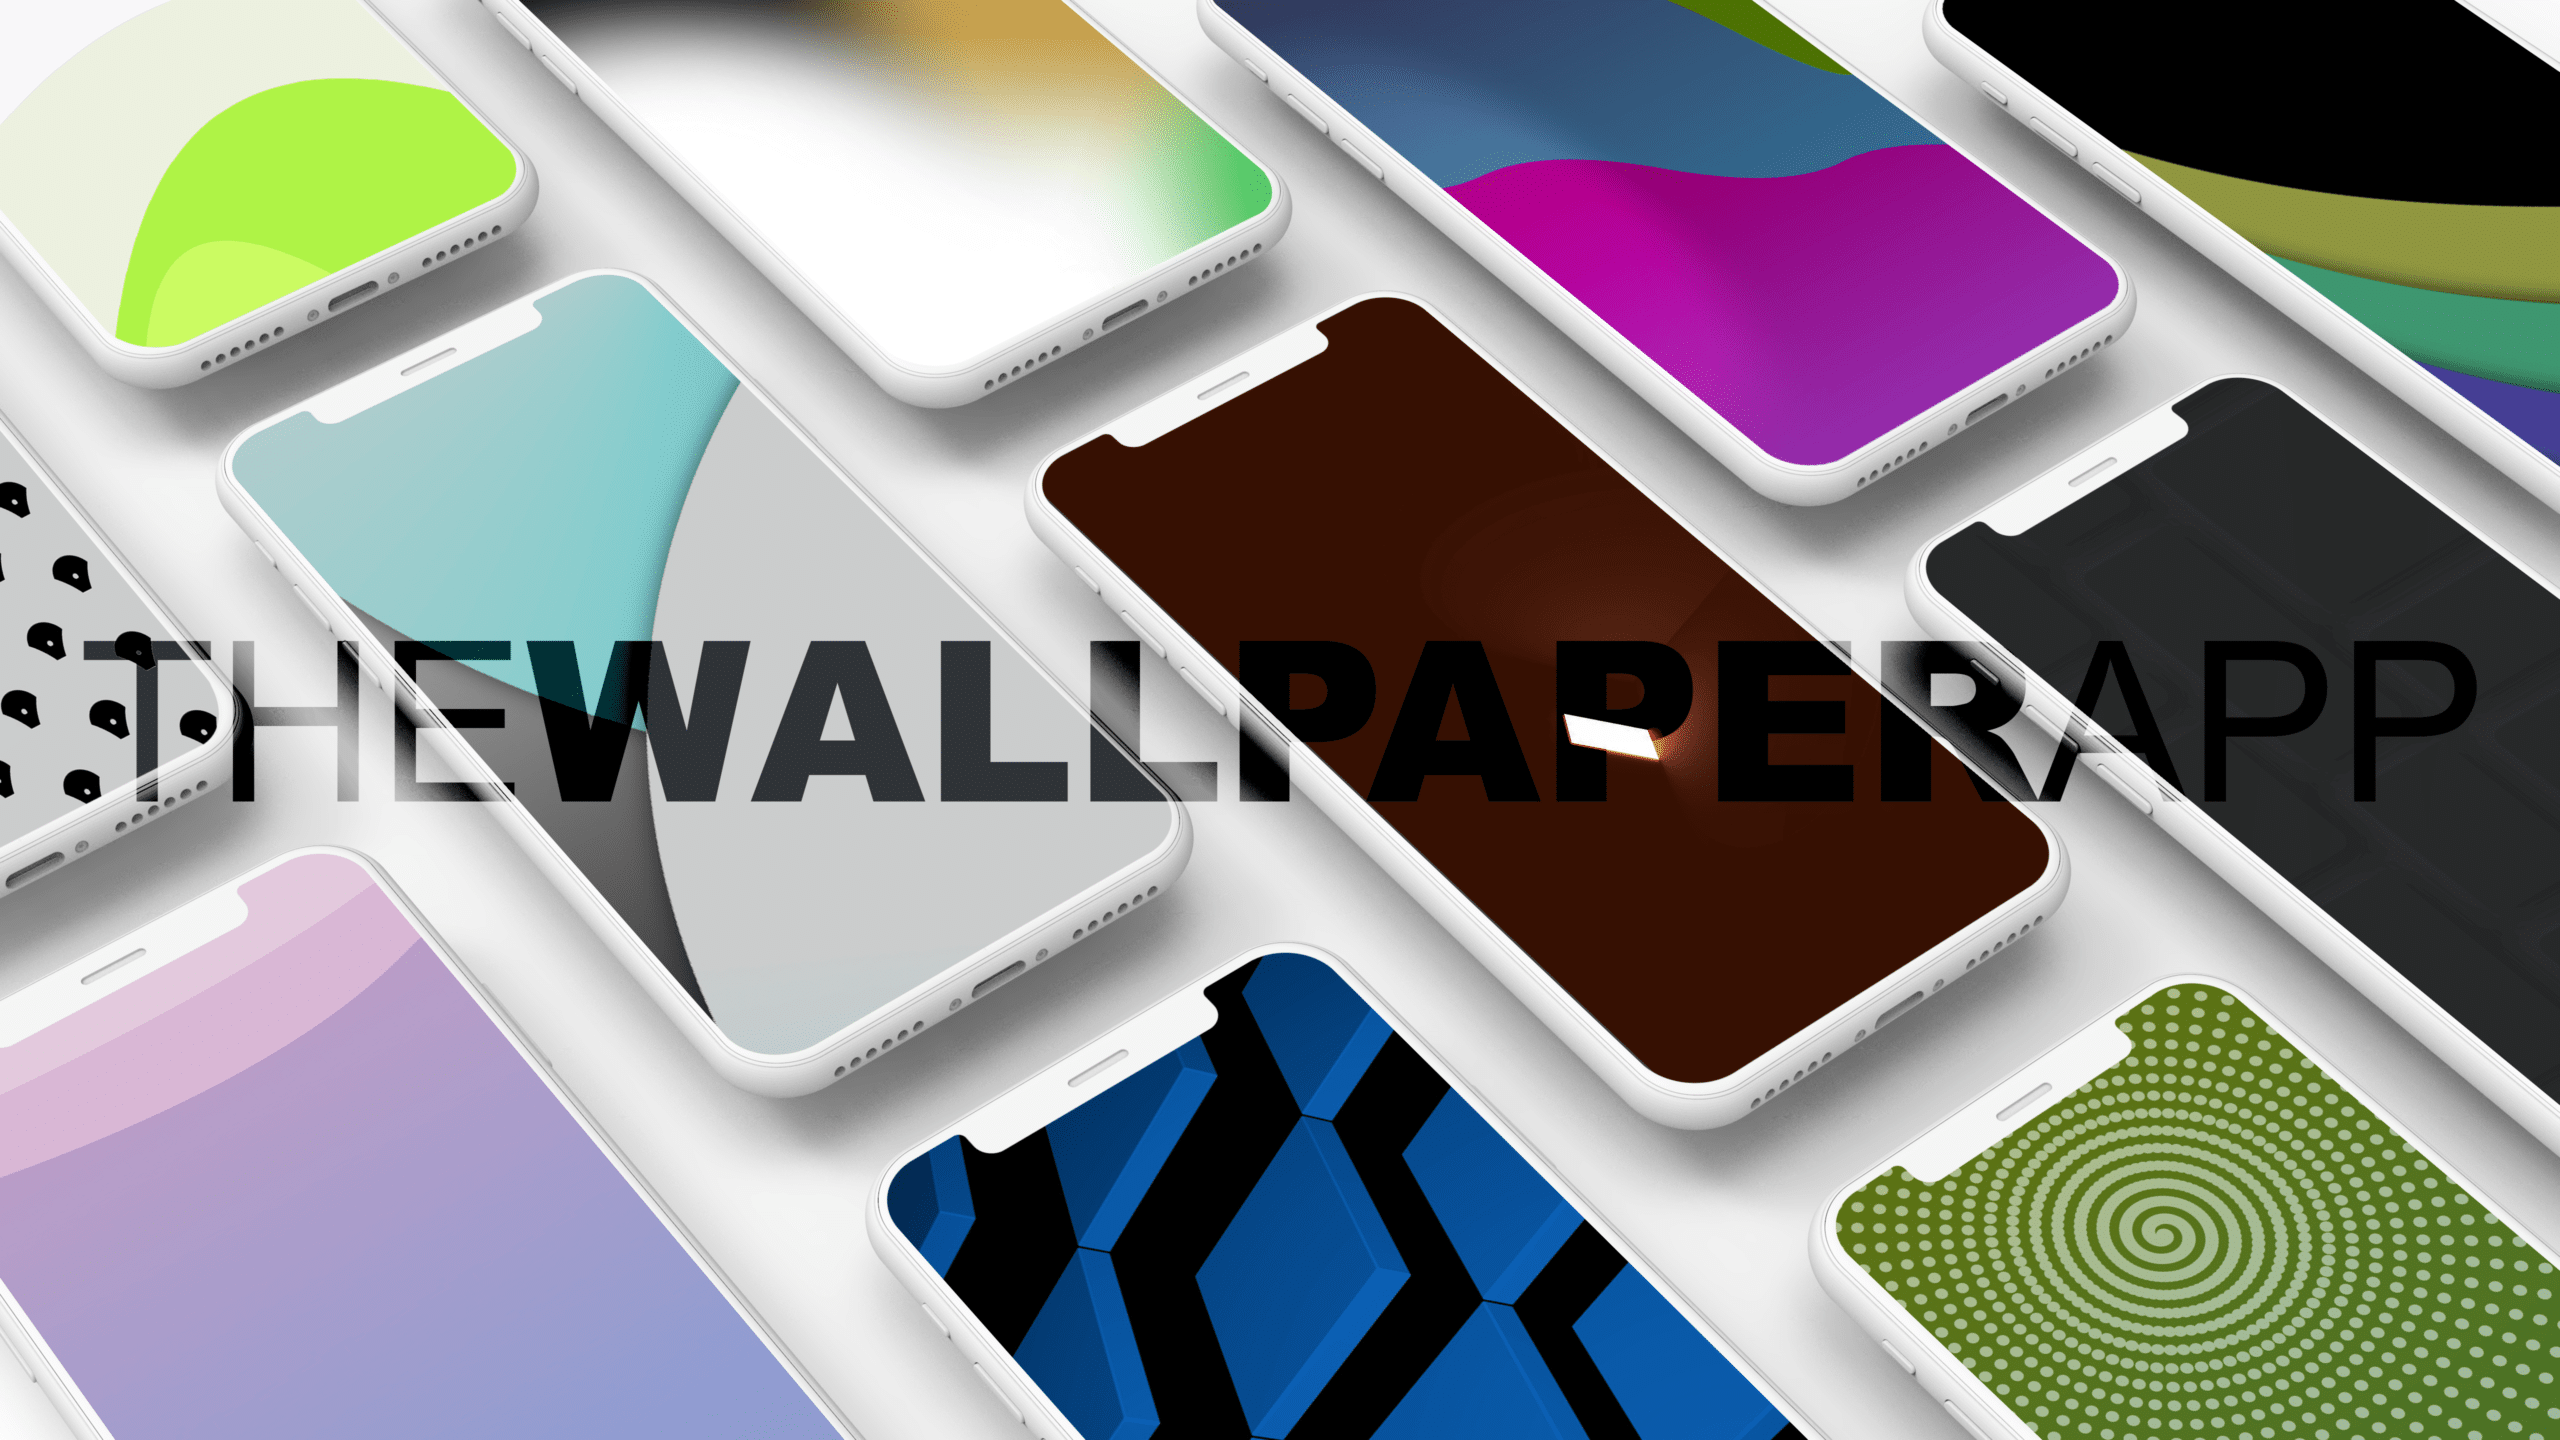 The Wallpaper App